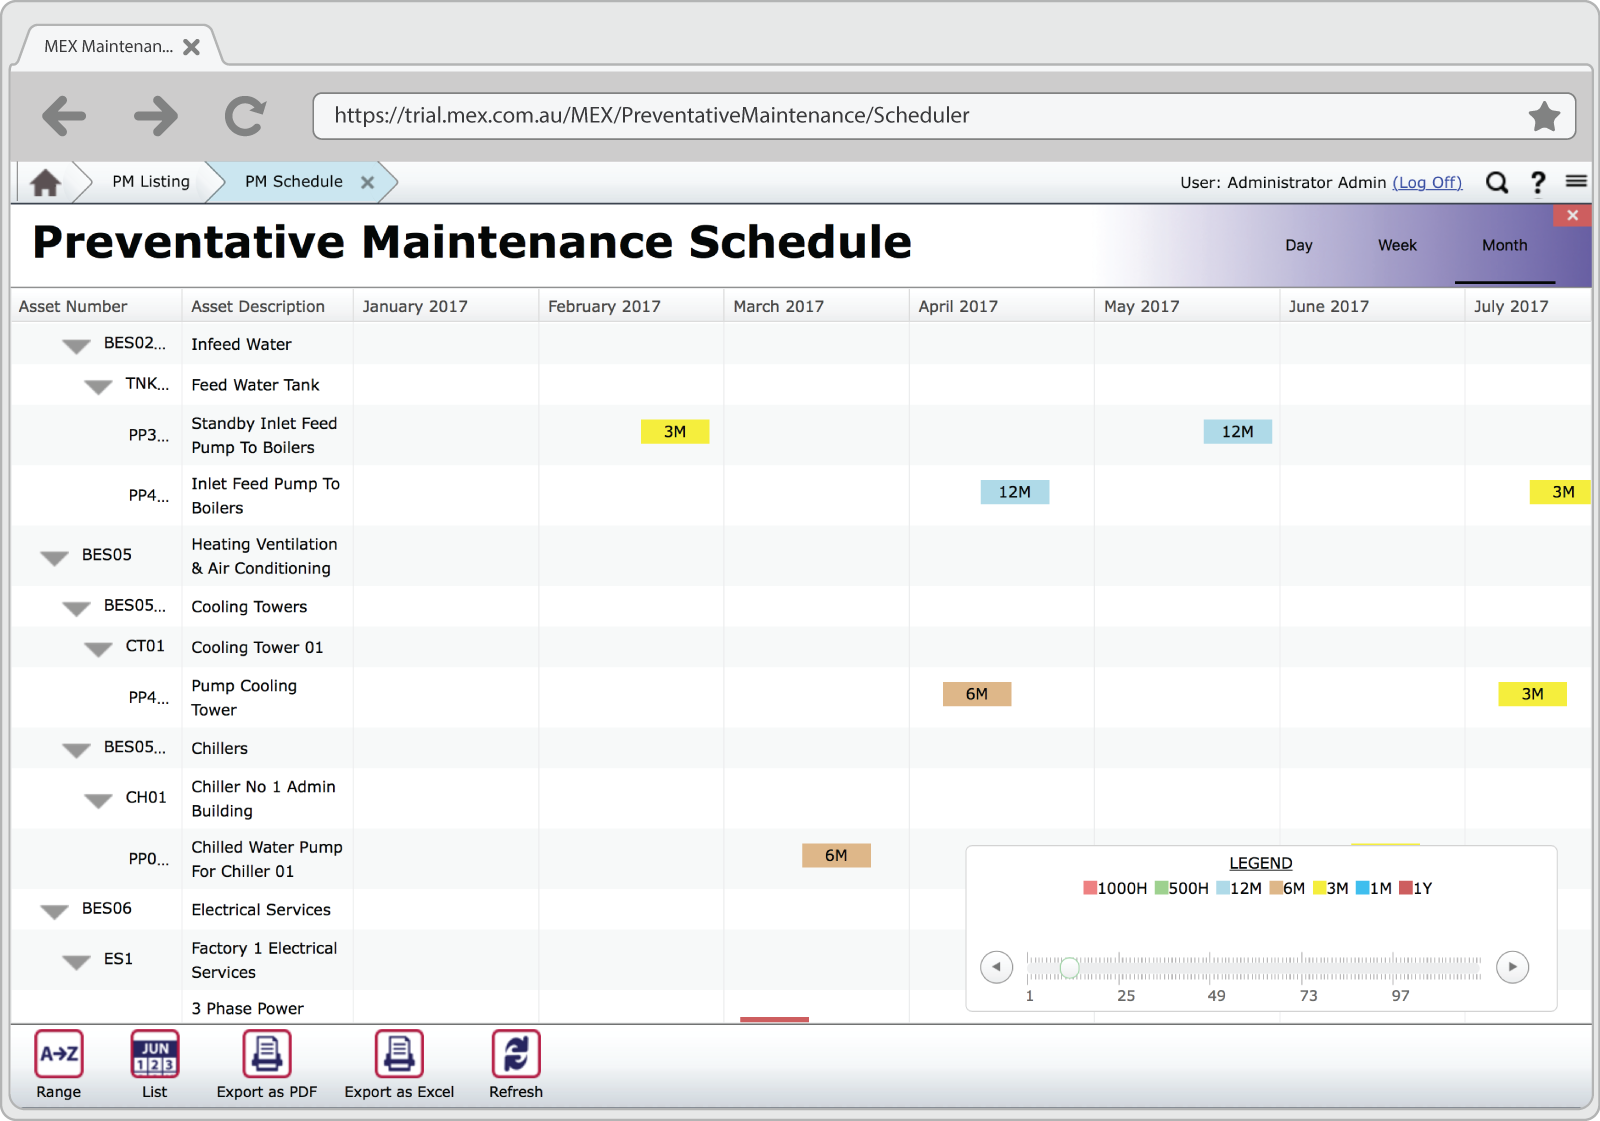 FleetMEX preventative maintenance schedule